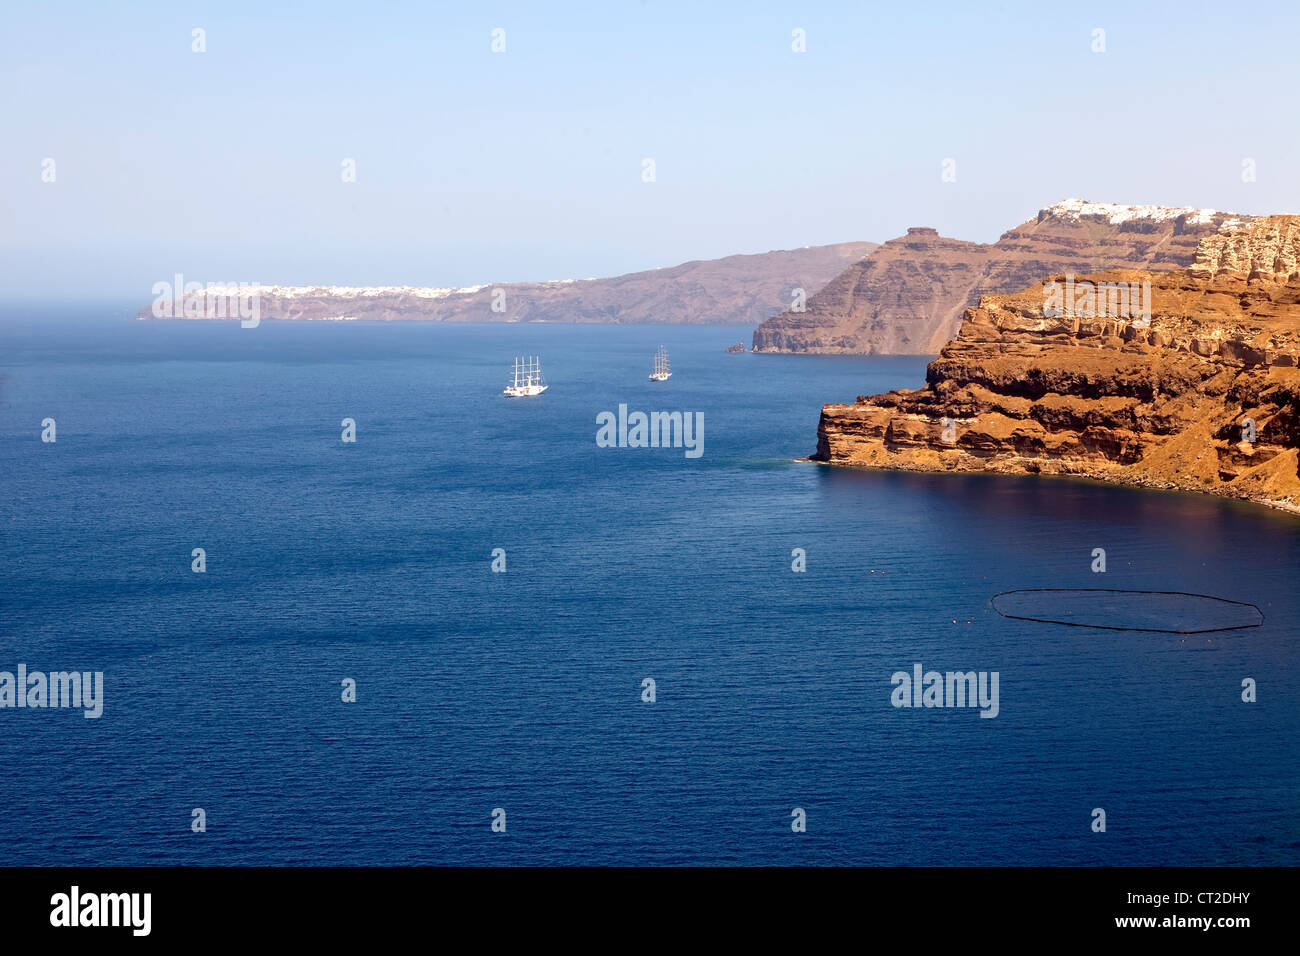 Panorama, Caldera, Santorini, Greece - Stock Image